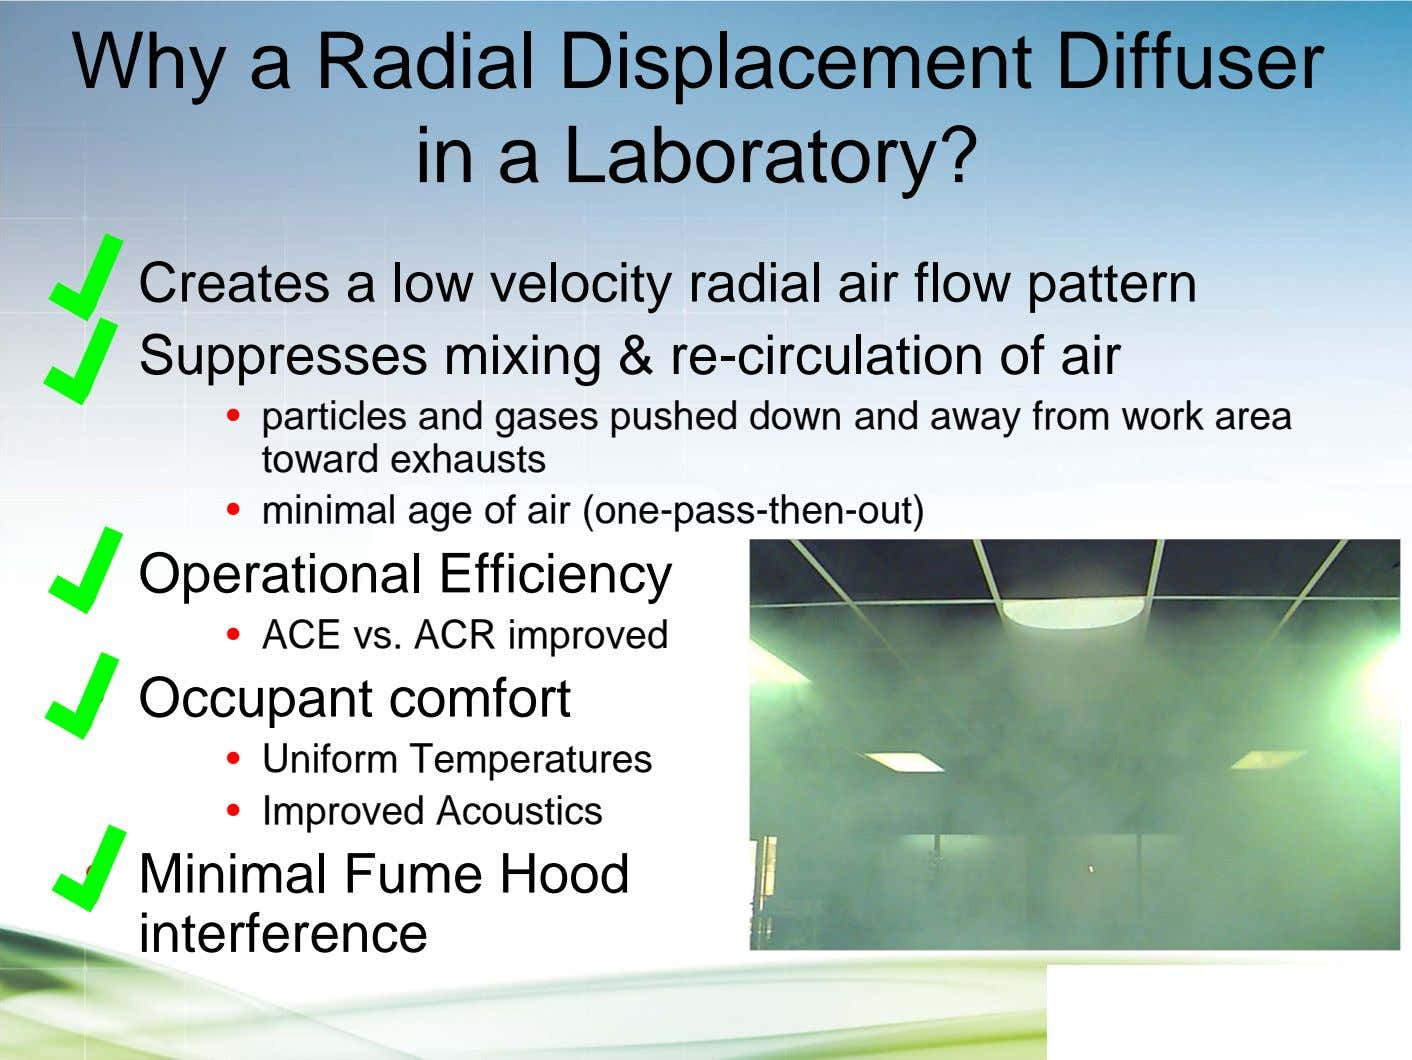 Why a Radial Displacement Diffuser in a Laboratory? • Creates a low velocity radial air